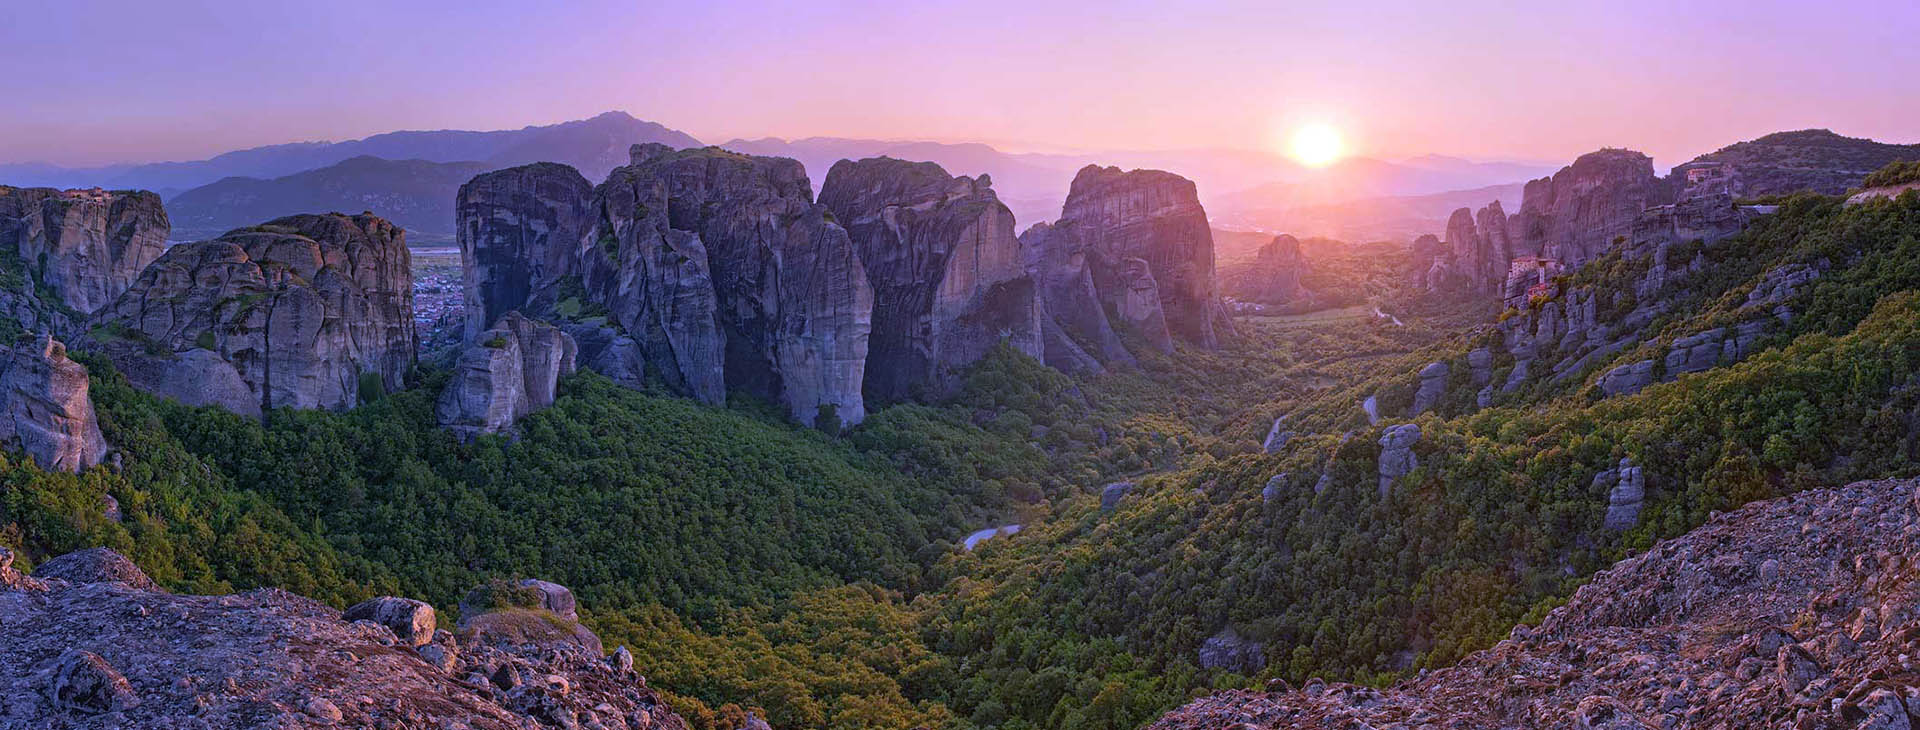 Sunset at Metéora, Trikala